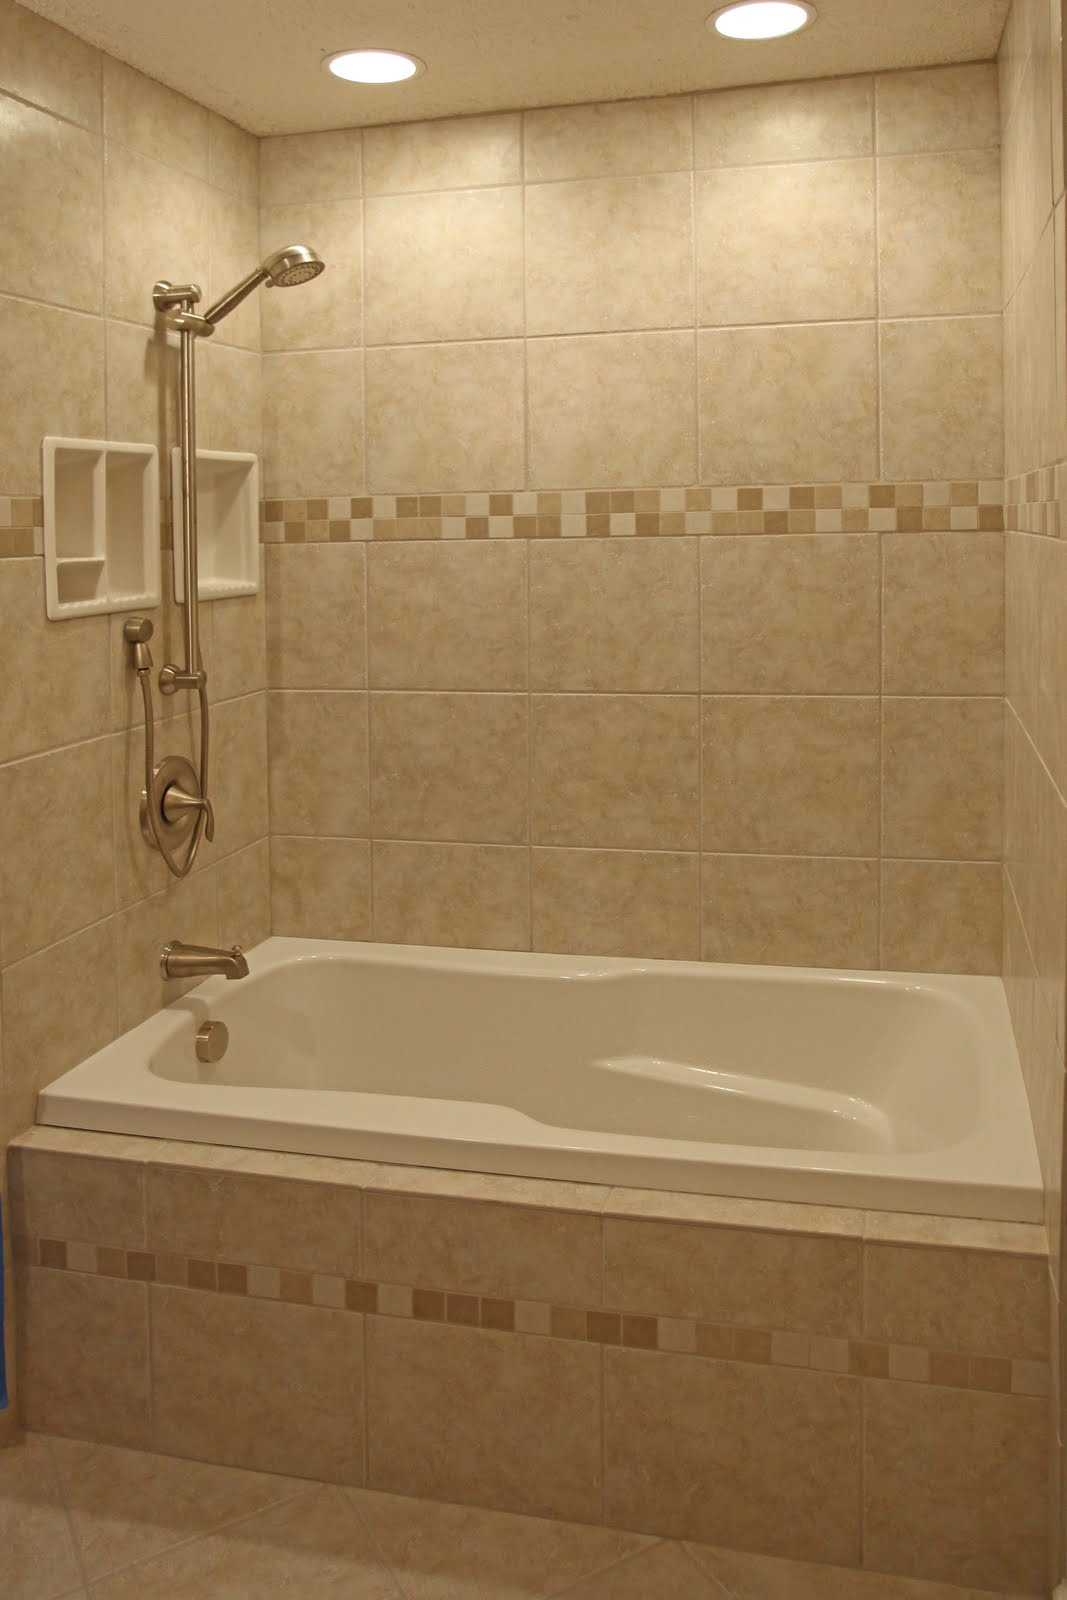 Bathroom remodeling design ideas tile shower niches for Best bathroom renovations